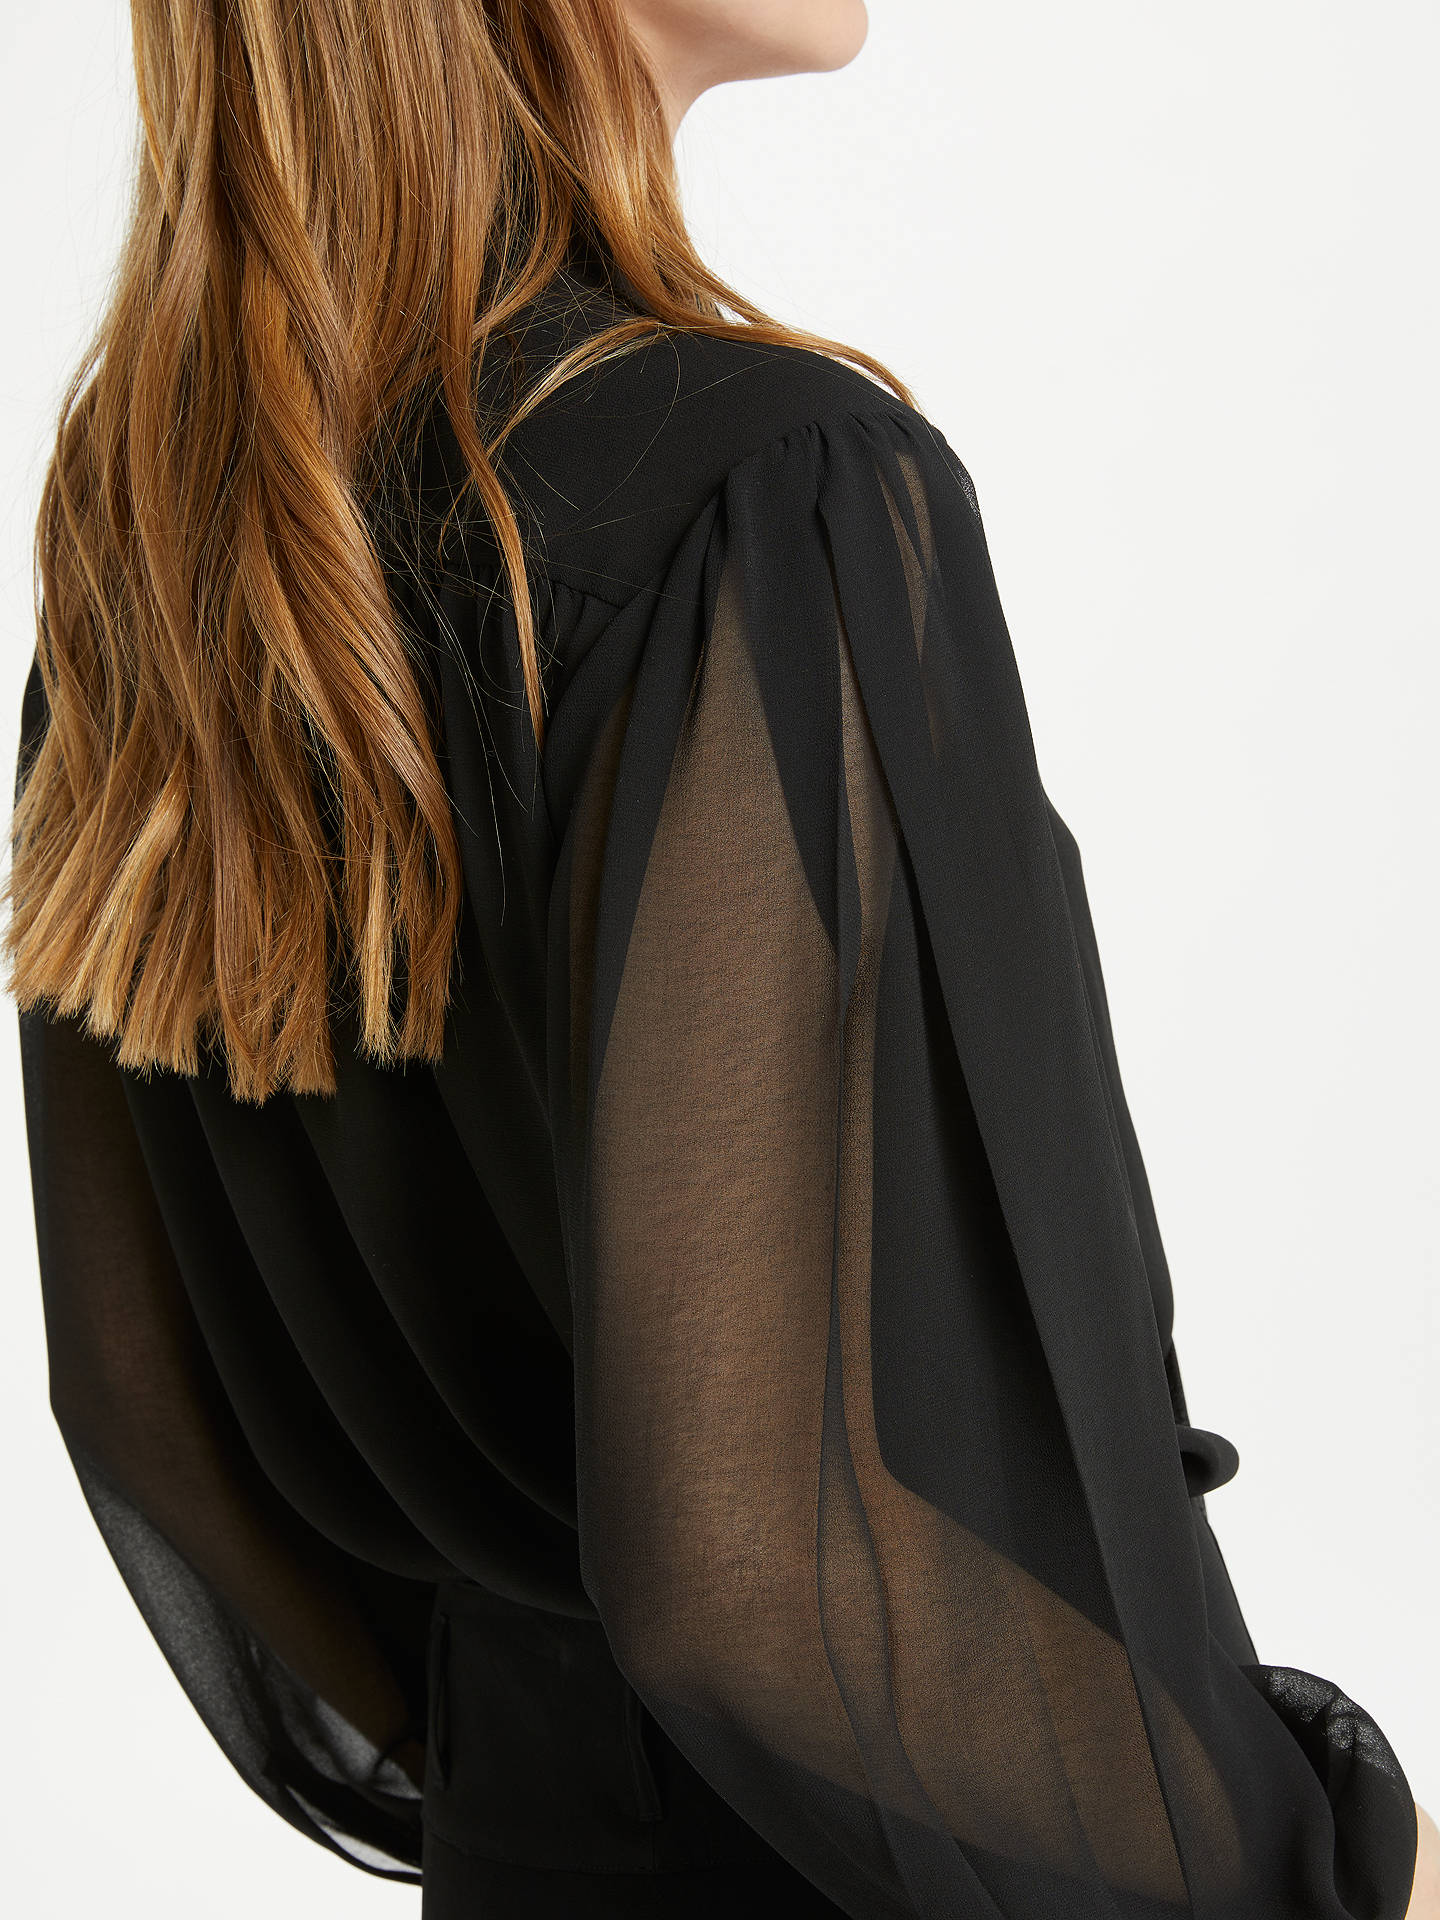 BuySomerset by Alice Temperley Tie Pleat Sleeve Blouse, Black, 8 Online at johnlewis.com